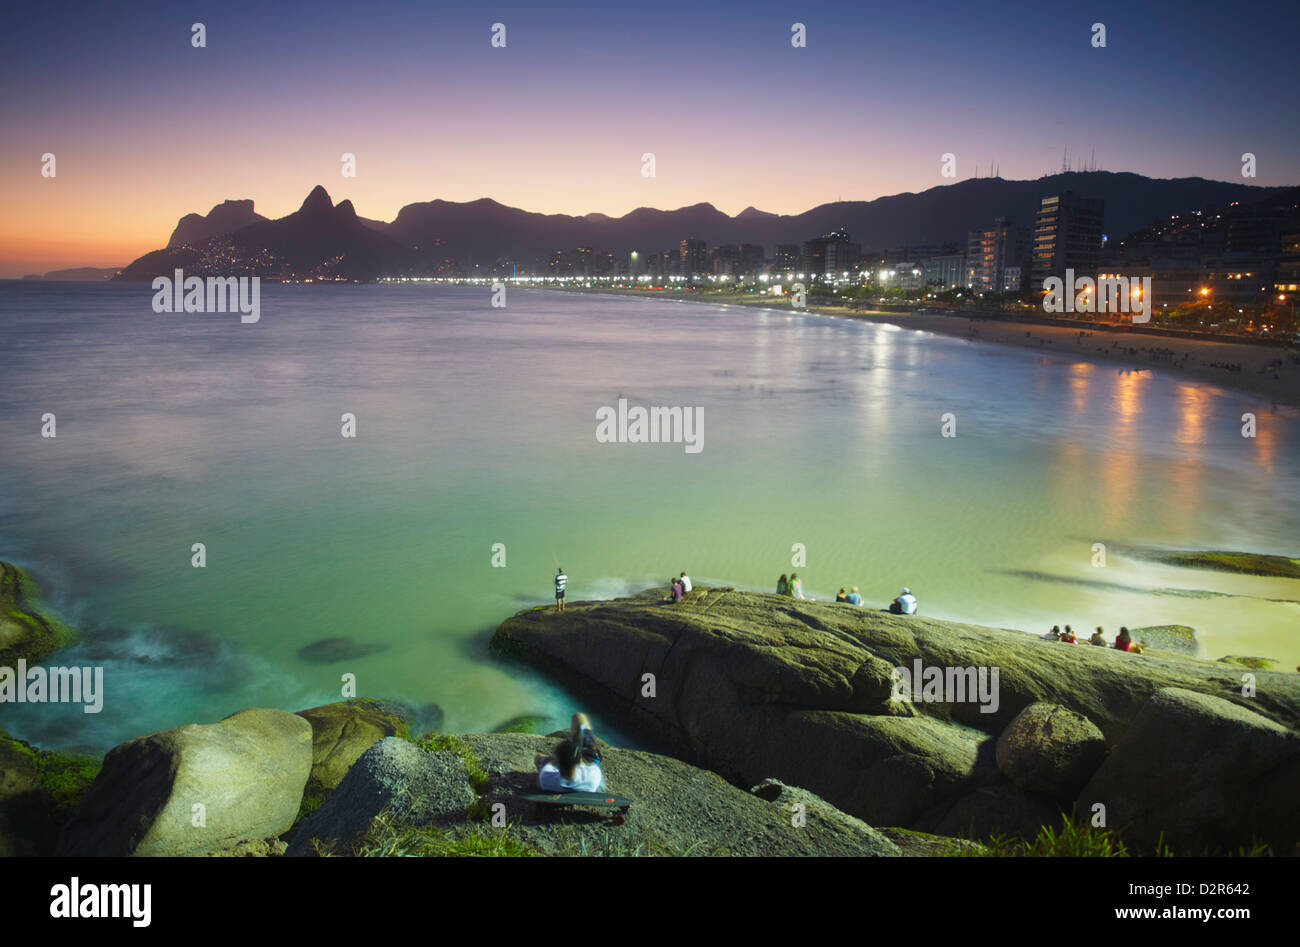 View of Ipanema beach at sunset from Ponta do Arpoador, Ipanema, Rio de Janeiro, Brazil, South America - Stock Image